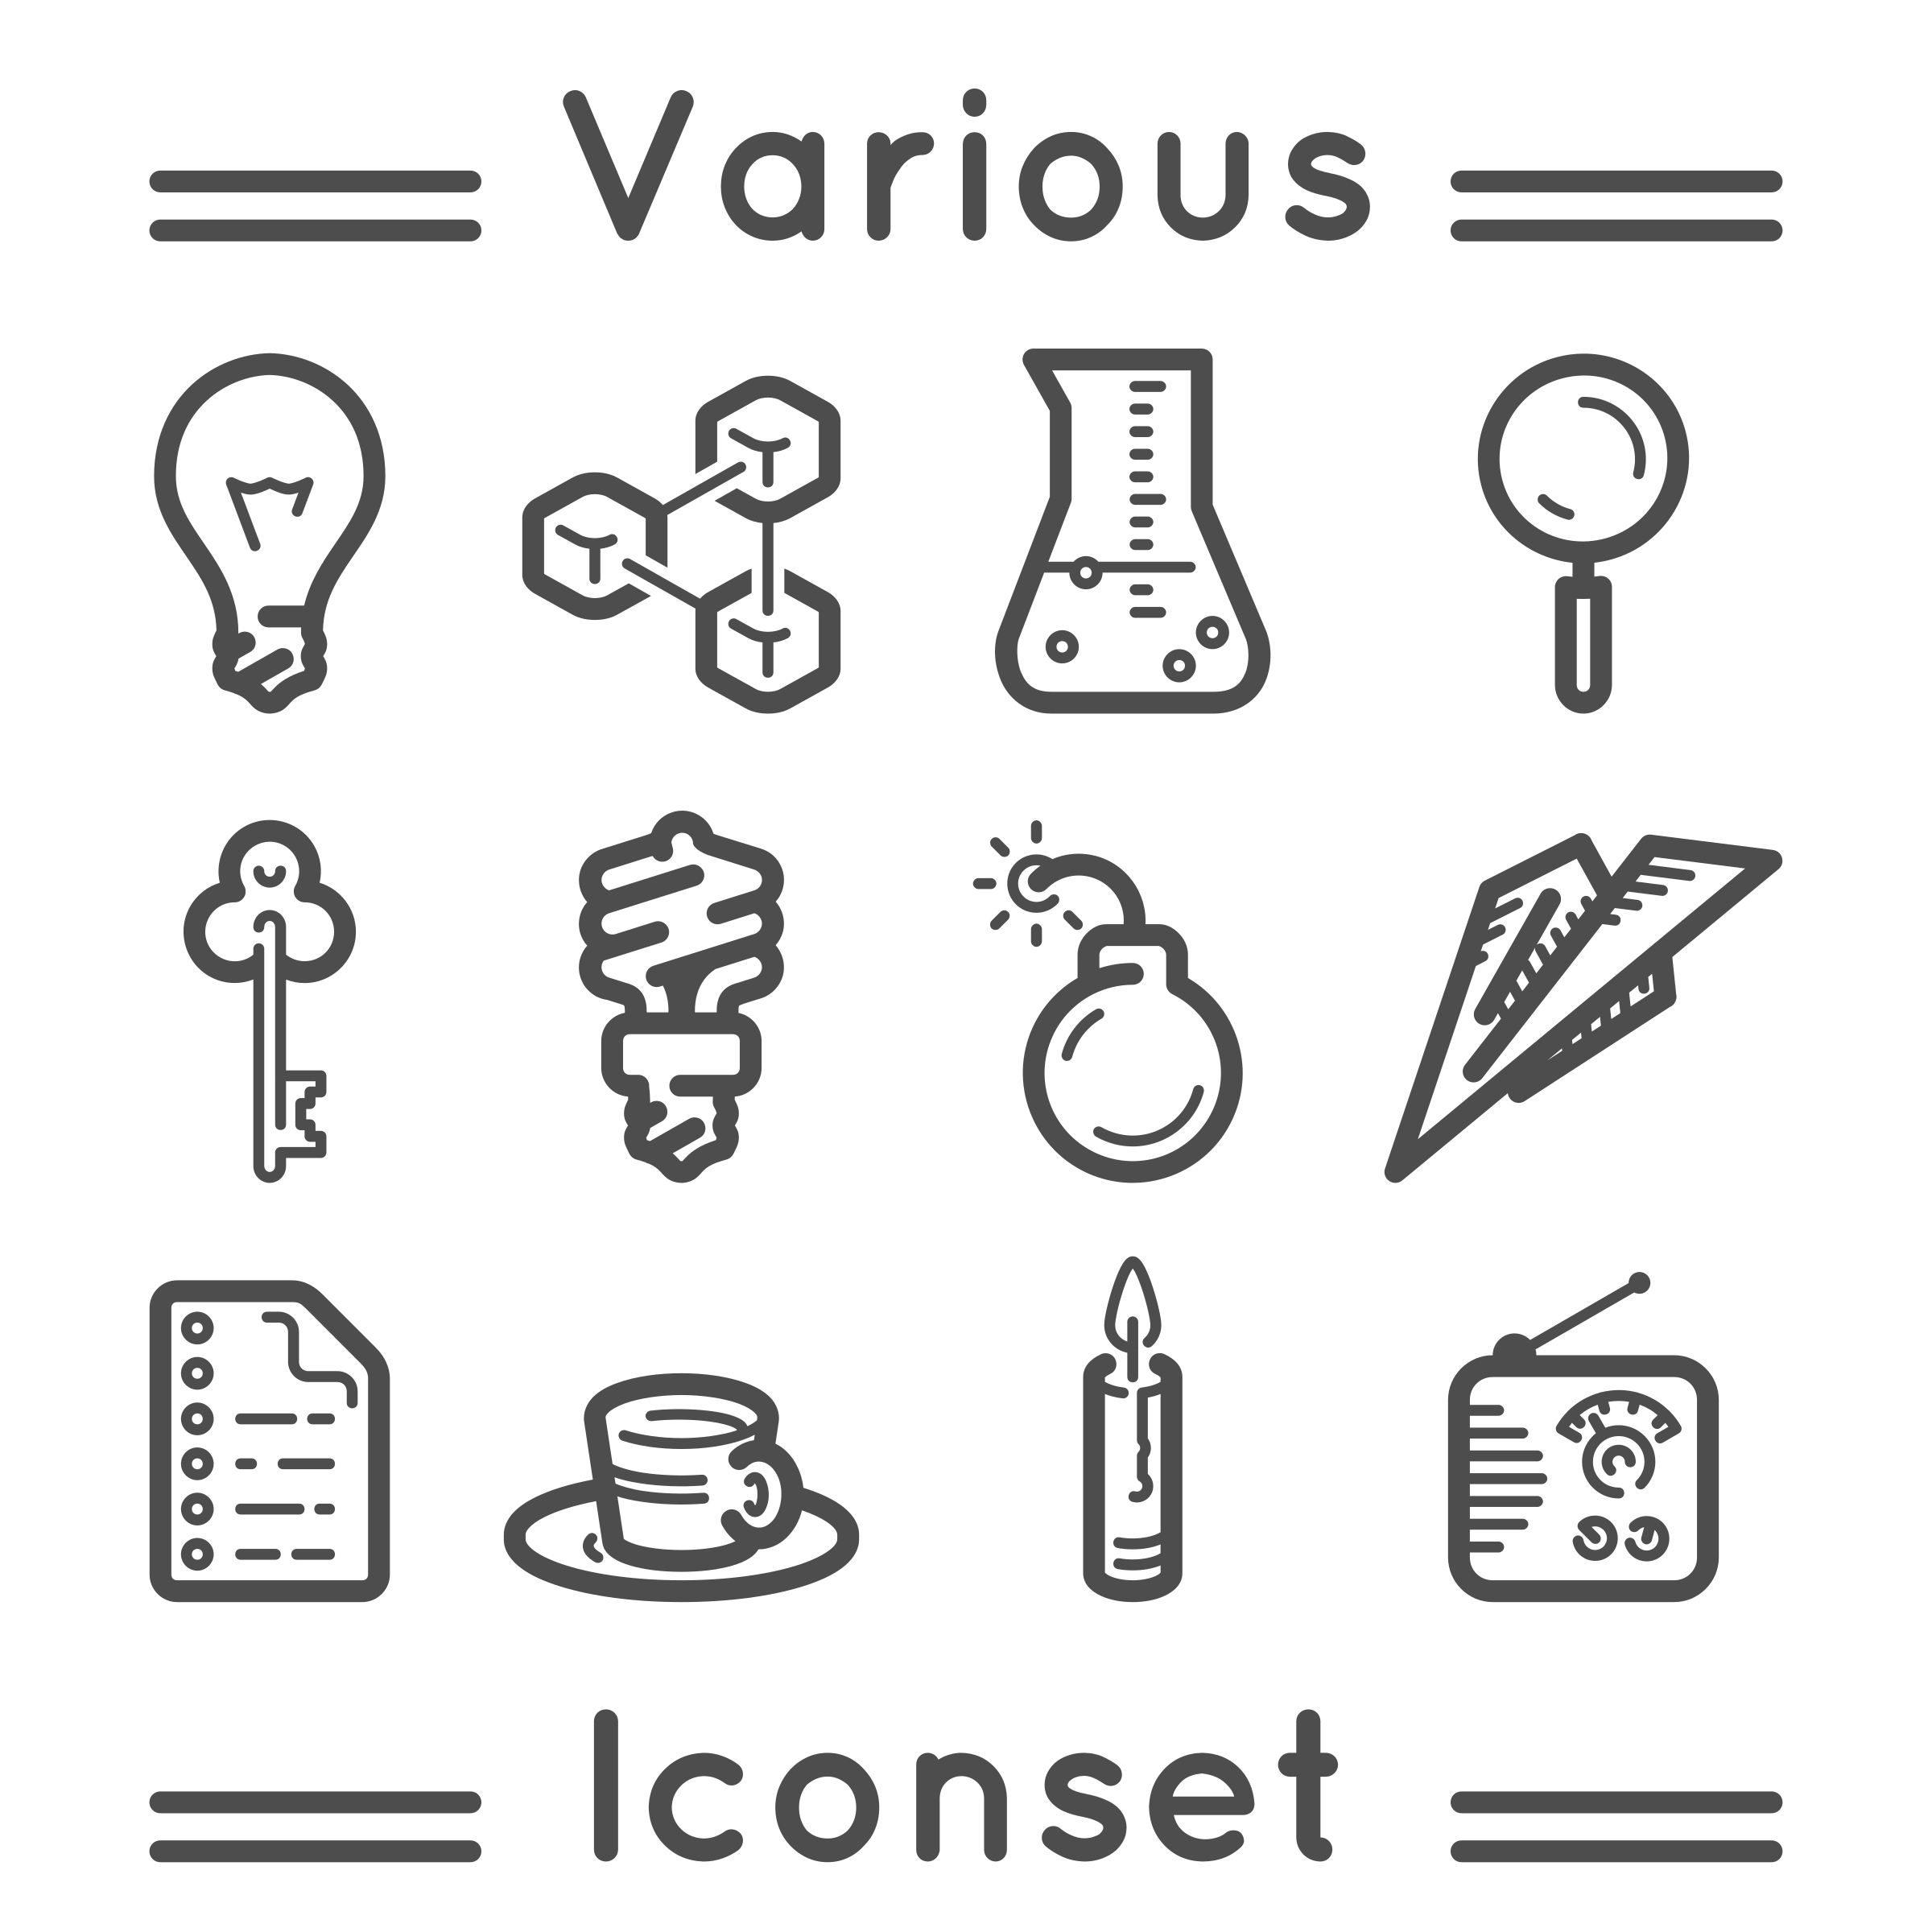 Various iconset by m1981